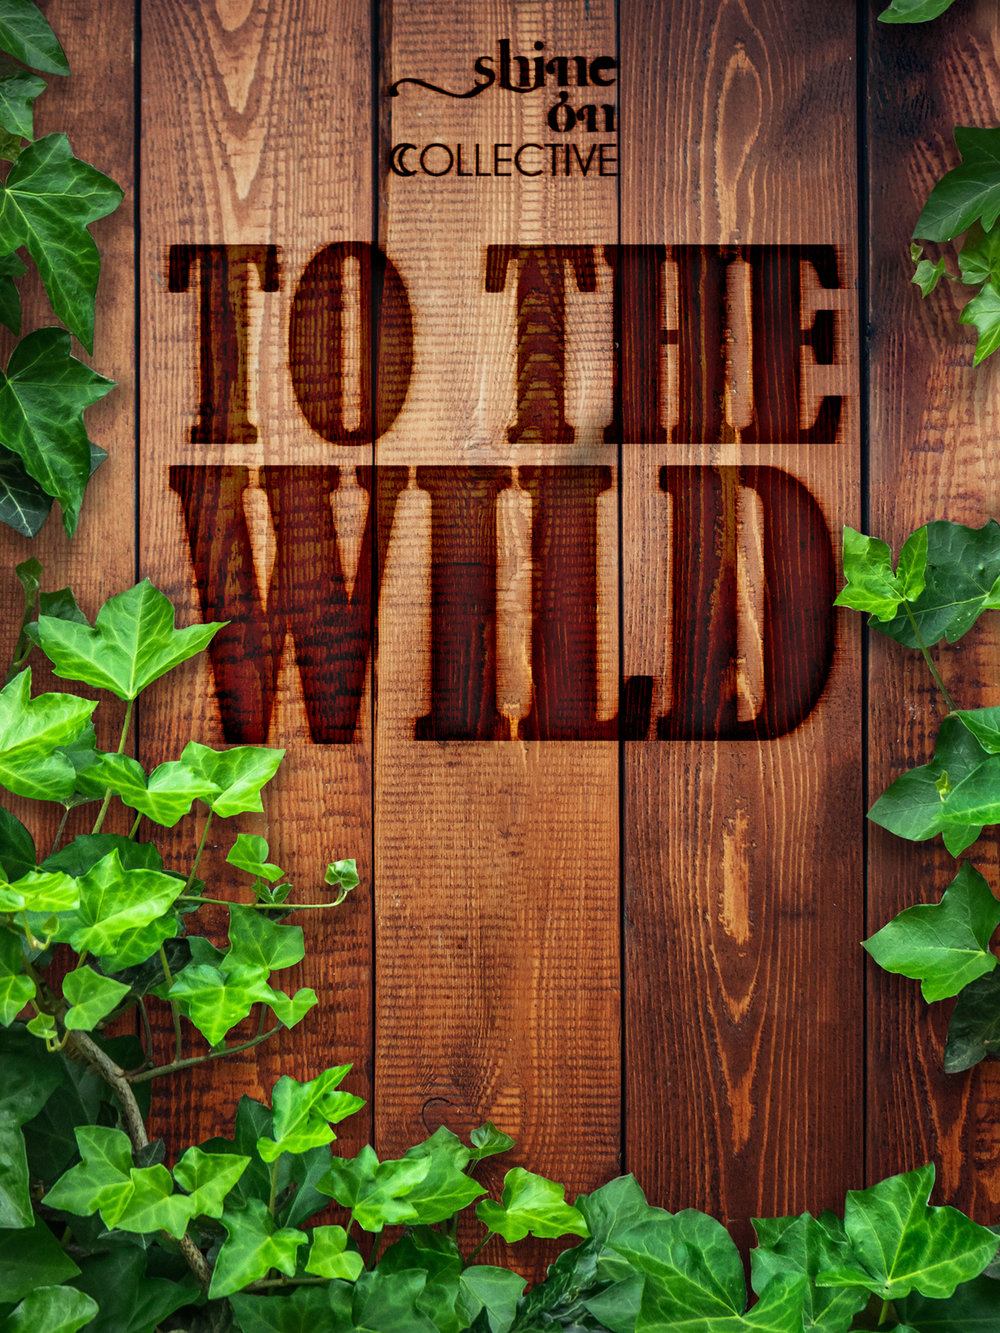 To The Wild